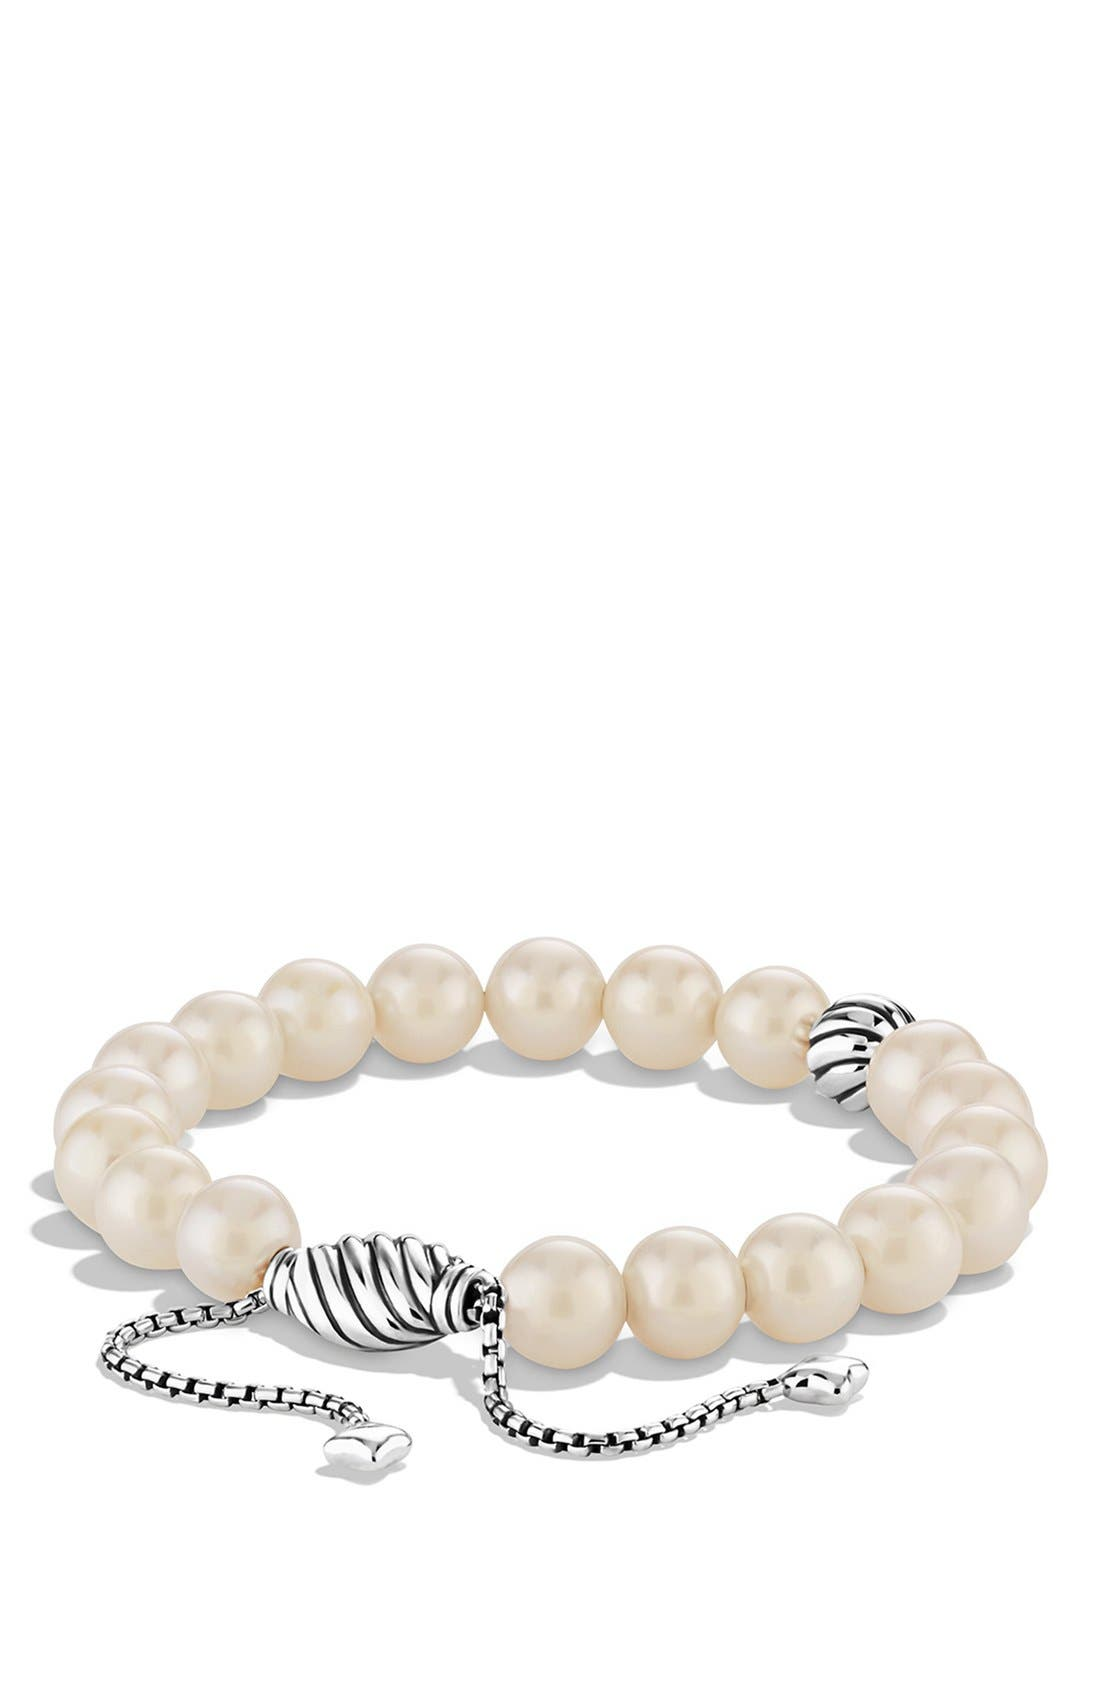 David Yurman 'Spiritual Beads' Bracelet with Pearls